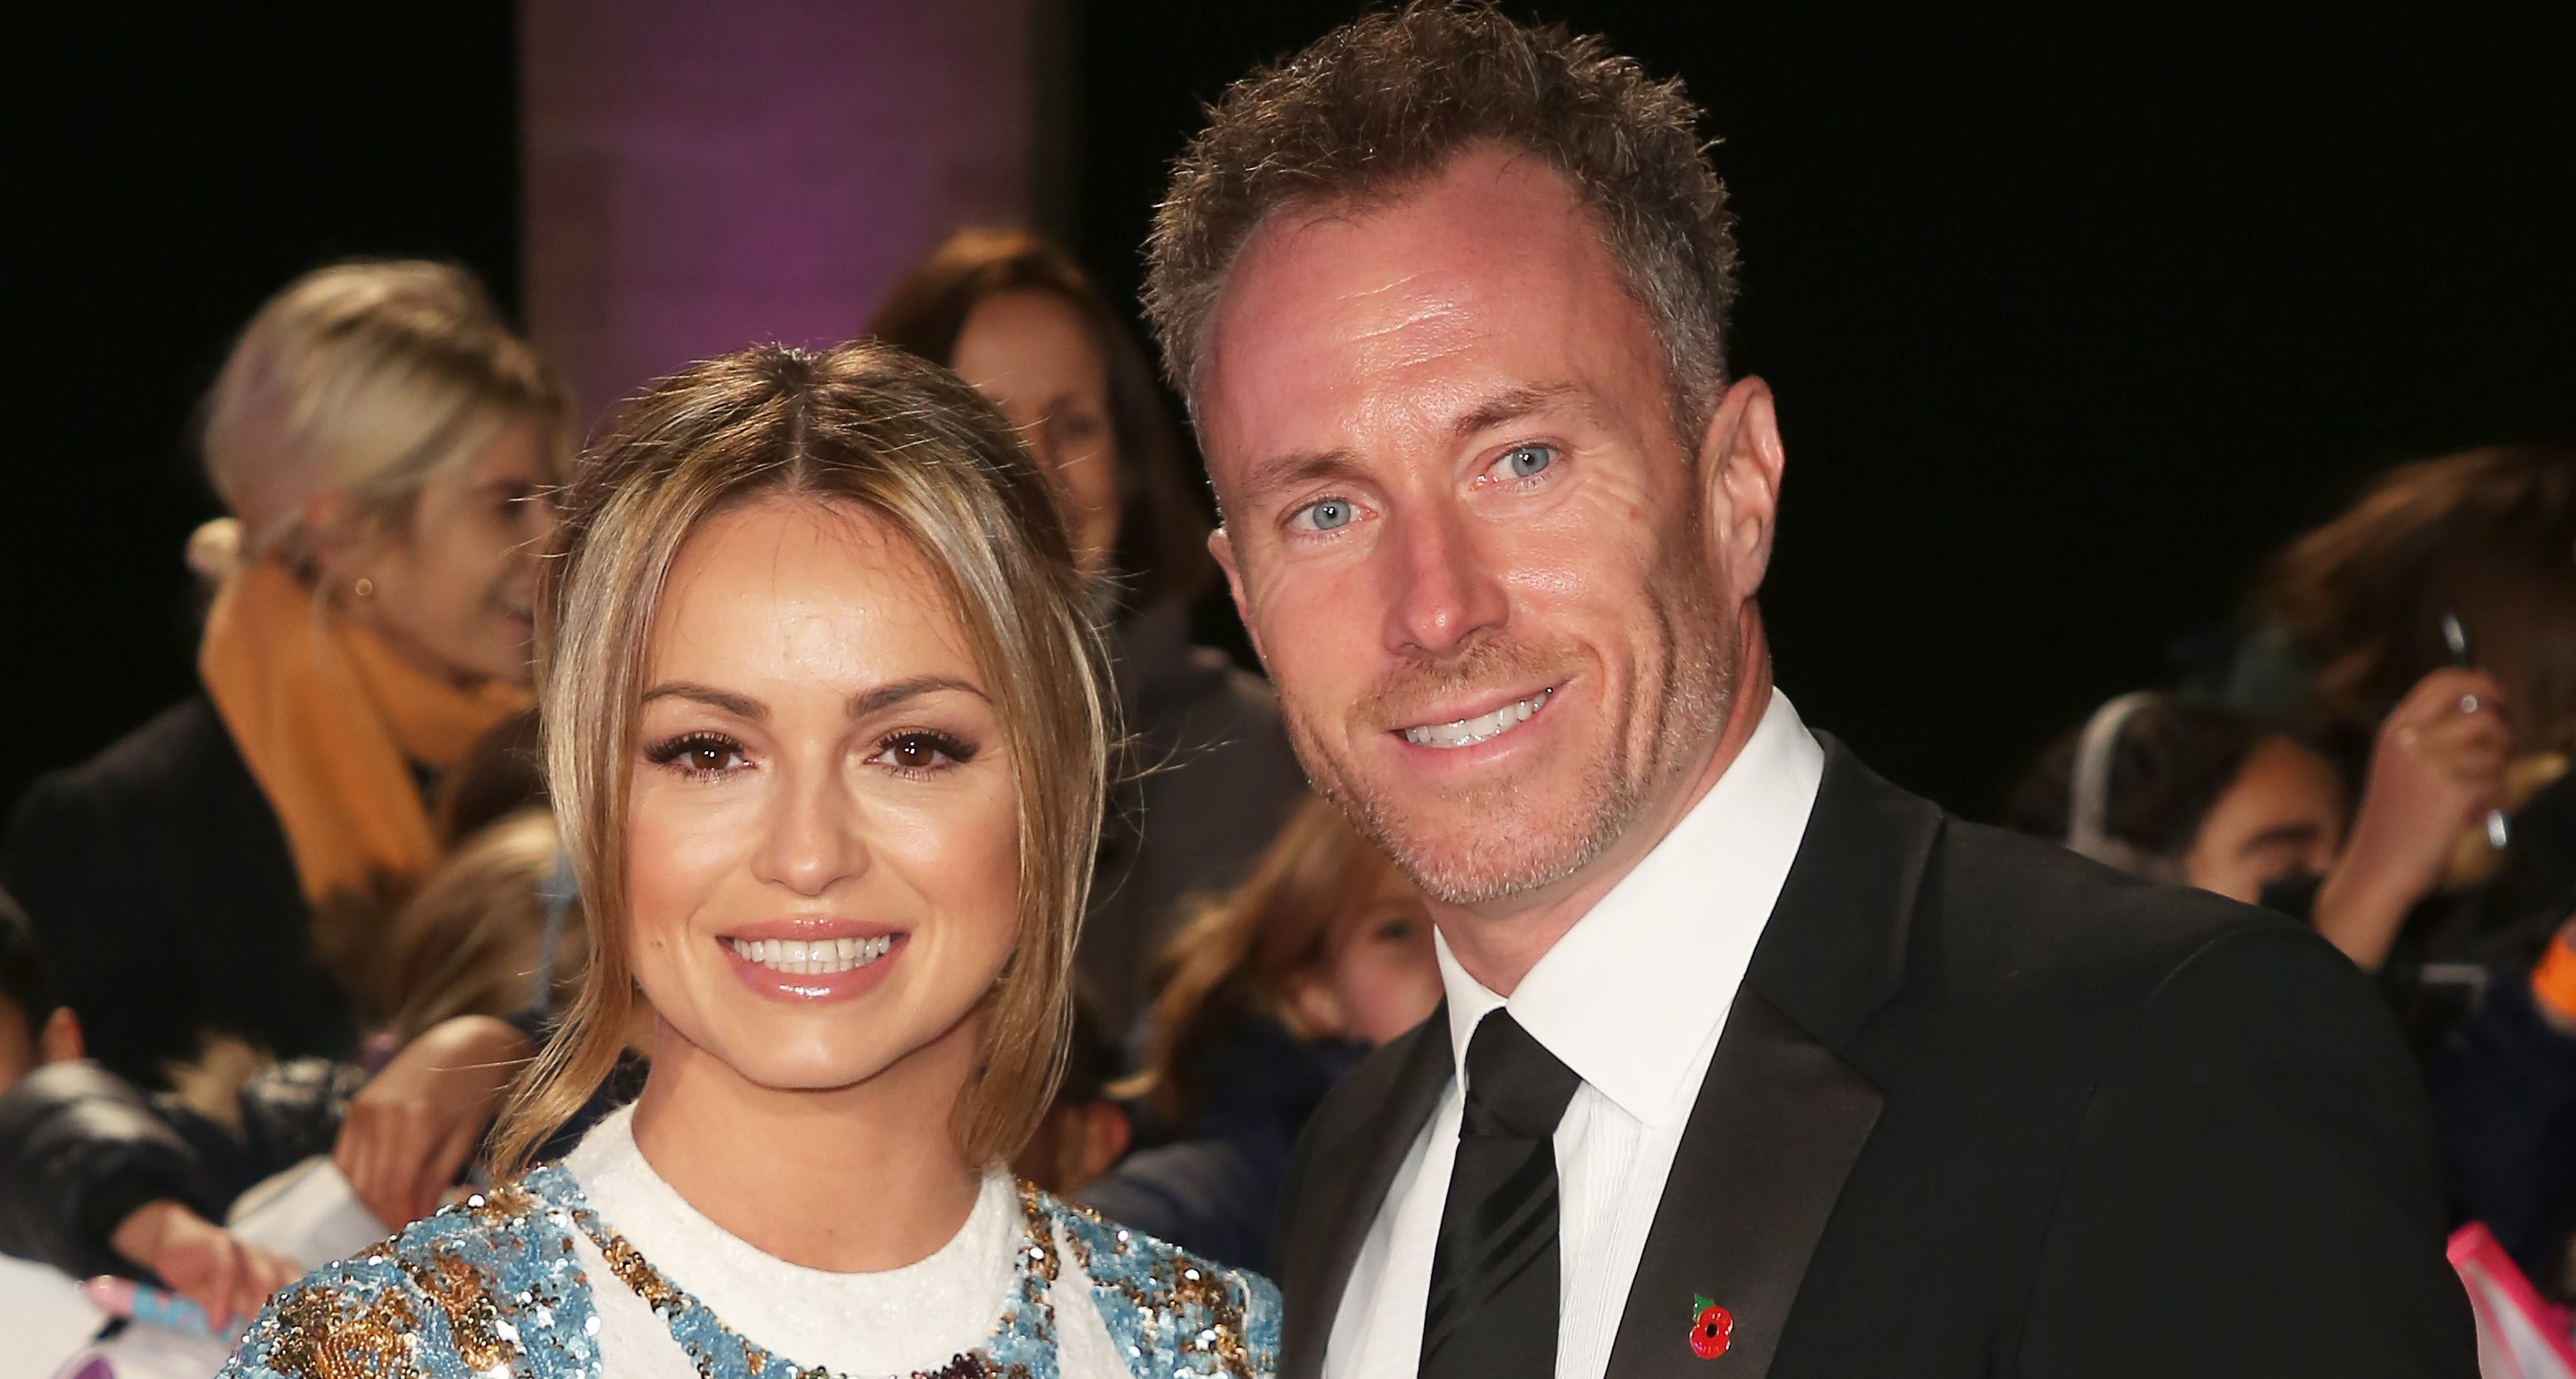 James and Ola Jordan share beautiful wedding pics to mark anniversary